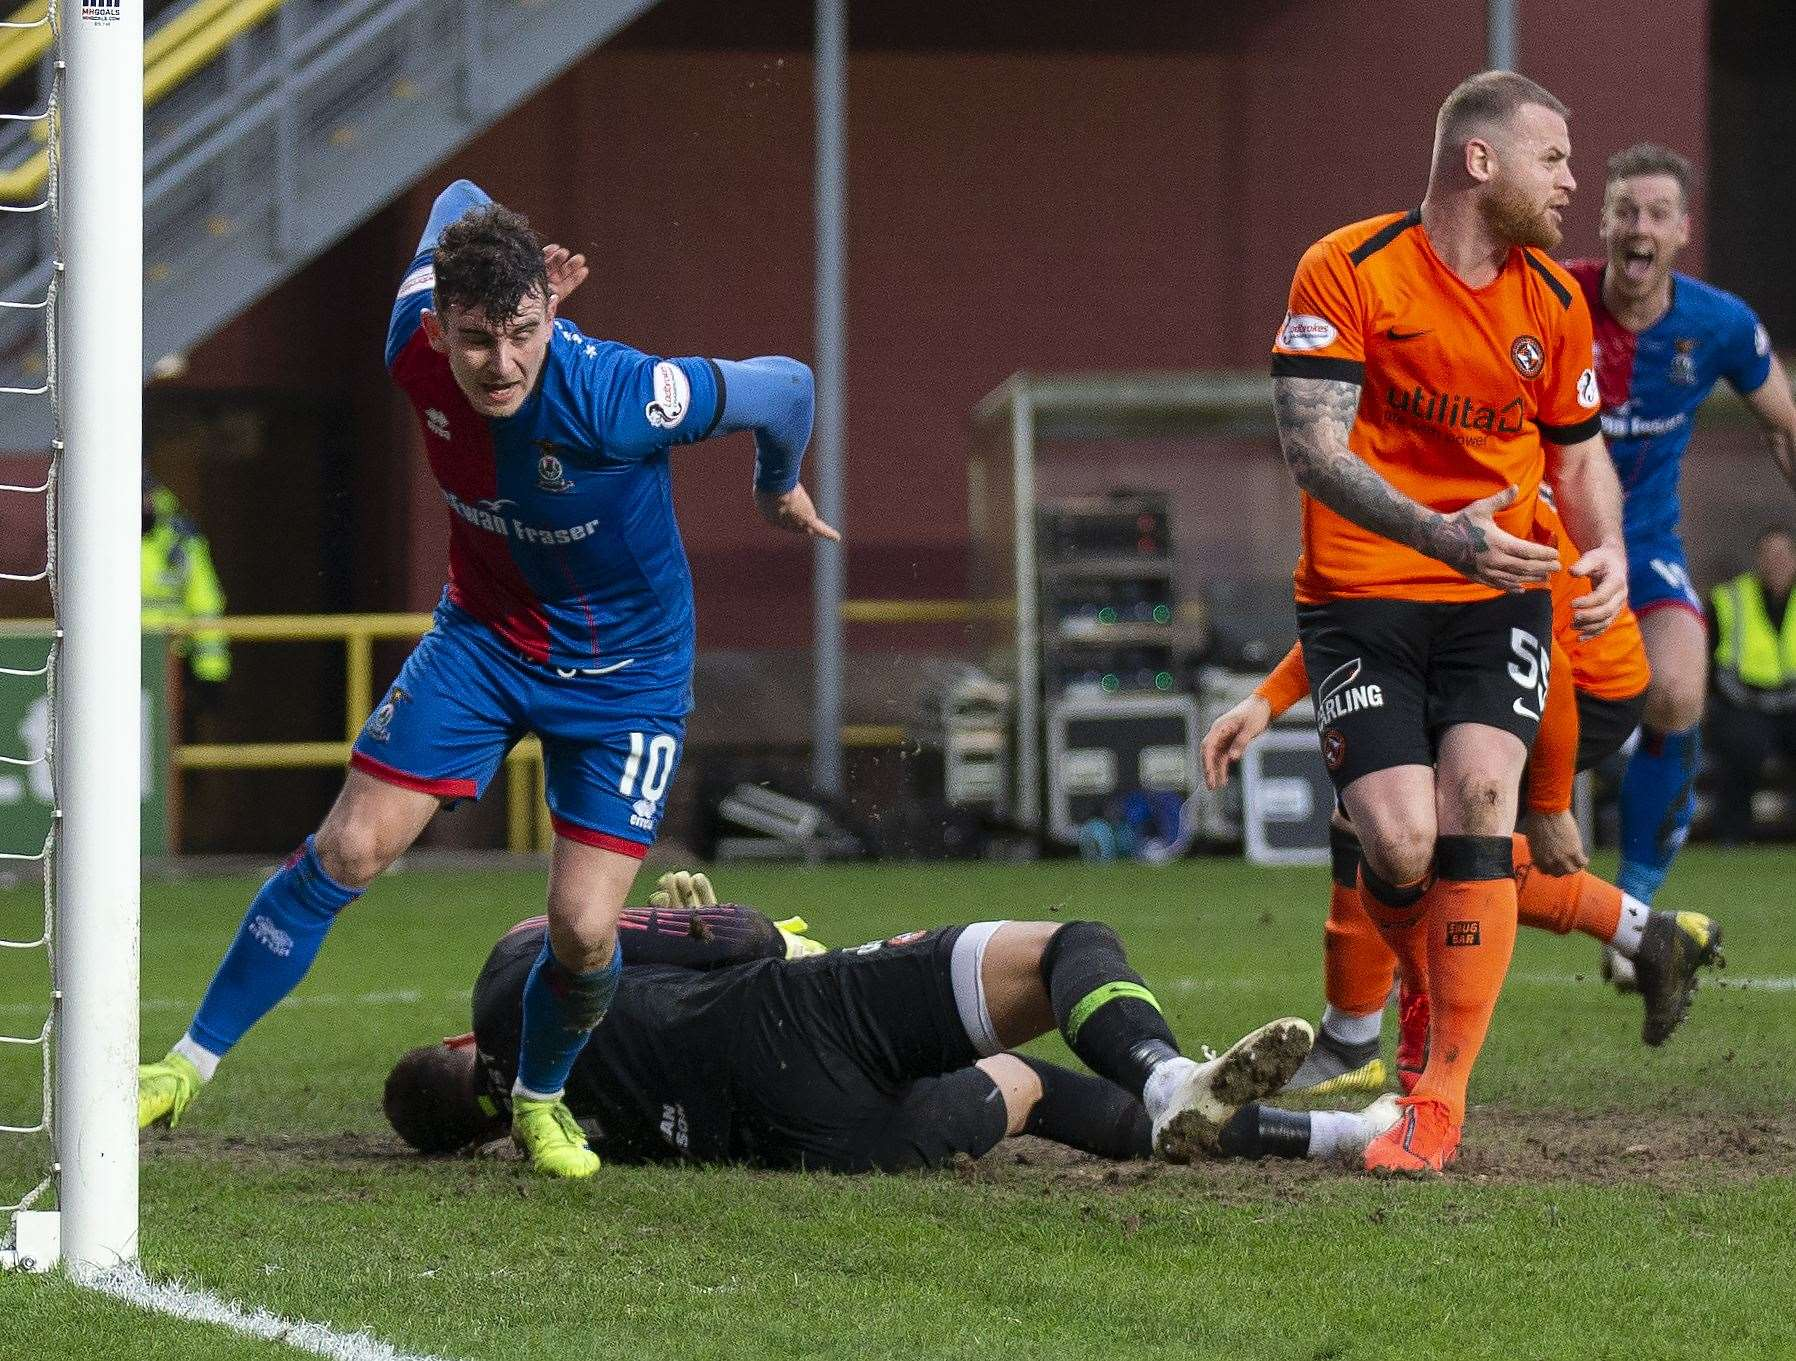 Aaron Doran scoring the winning goal against Dundee United. Picture: Ken Macpherson